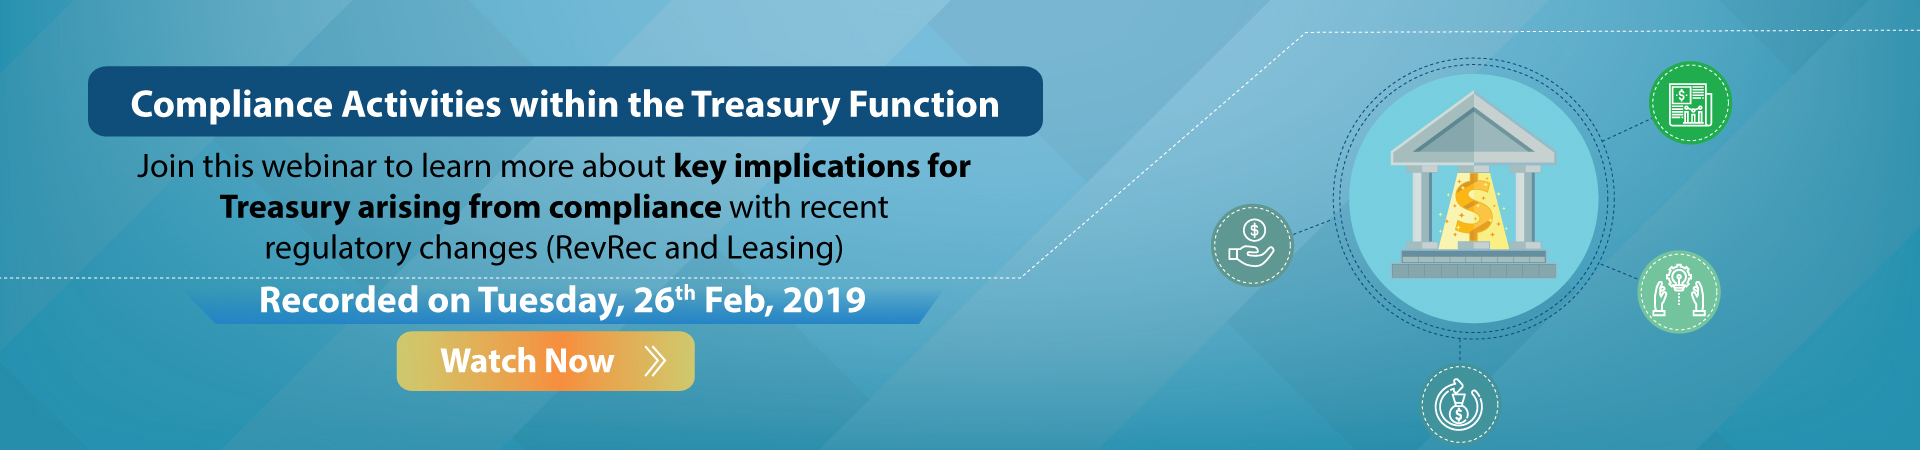 Compliance Activities within the Treasury Function – Feb 26, 2019